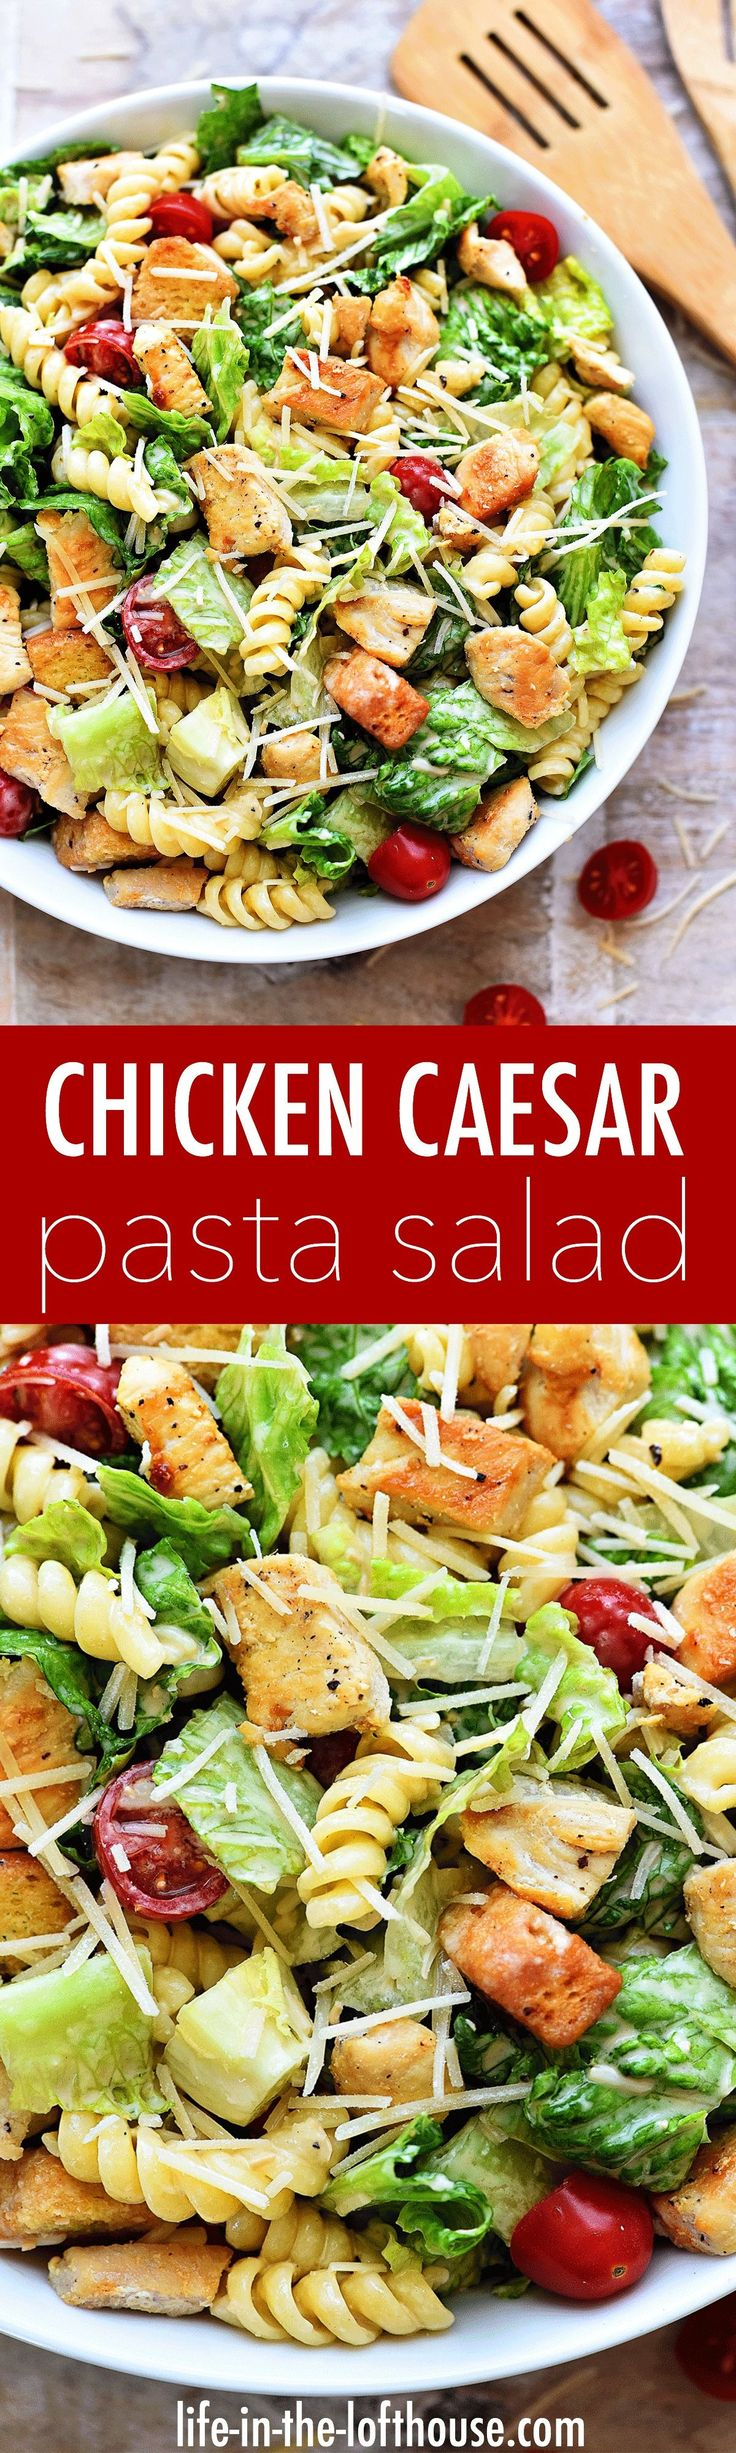 It's this time of year salads are my go-to for lunches and dinners. Honestly, I eat them year round but during the summer they become what I eat almost daily. There are so many amazing and flavorful salads out there but this CHICKEN CAESAR PASTA SALAD has to be my favorite. I love this... Read More »